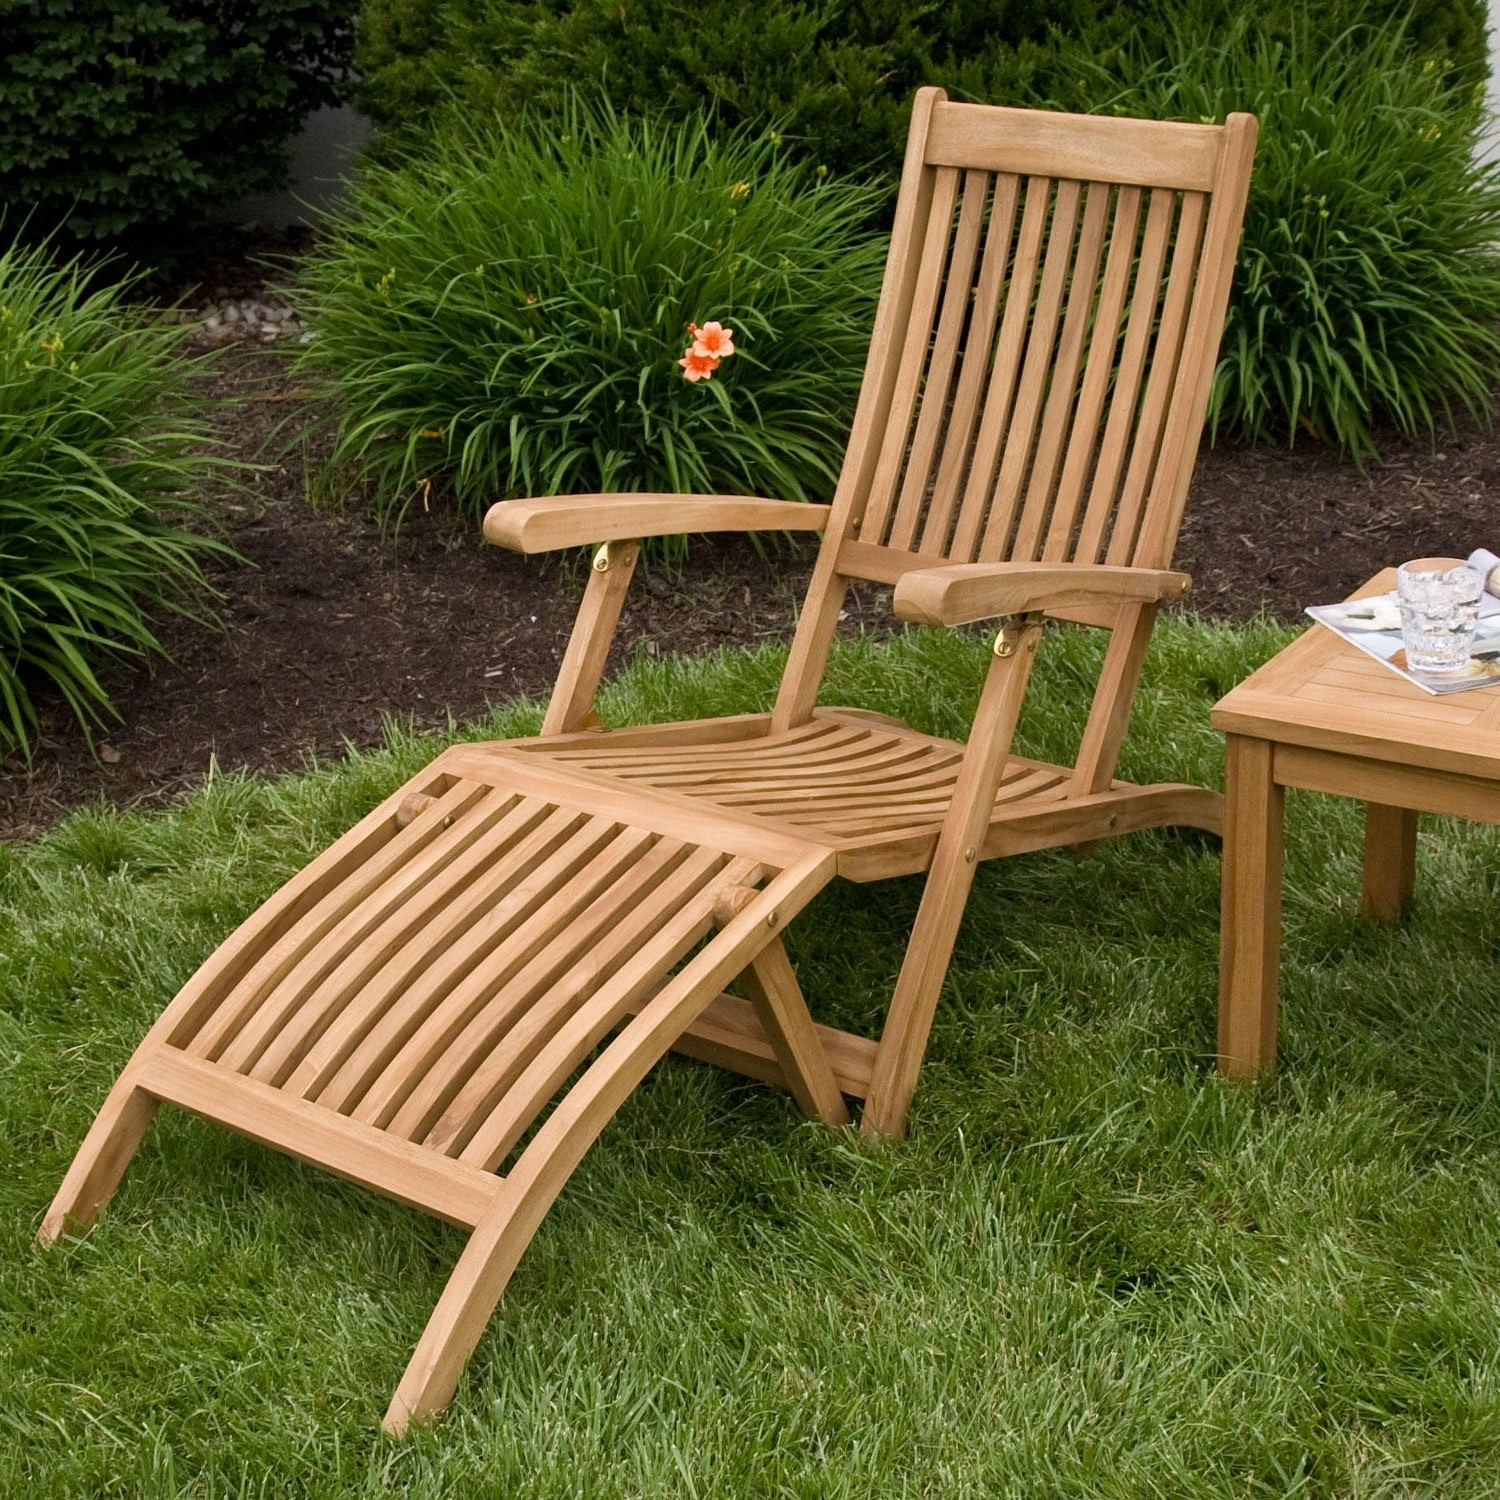 Famous Cheap Folding Chaise Lounge Chairs For Outdoor With Holley Teak Outdoor Folding Steamer Lounge Chair – Outdoor (View 13 of 15)